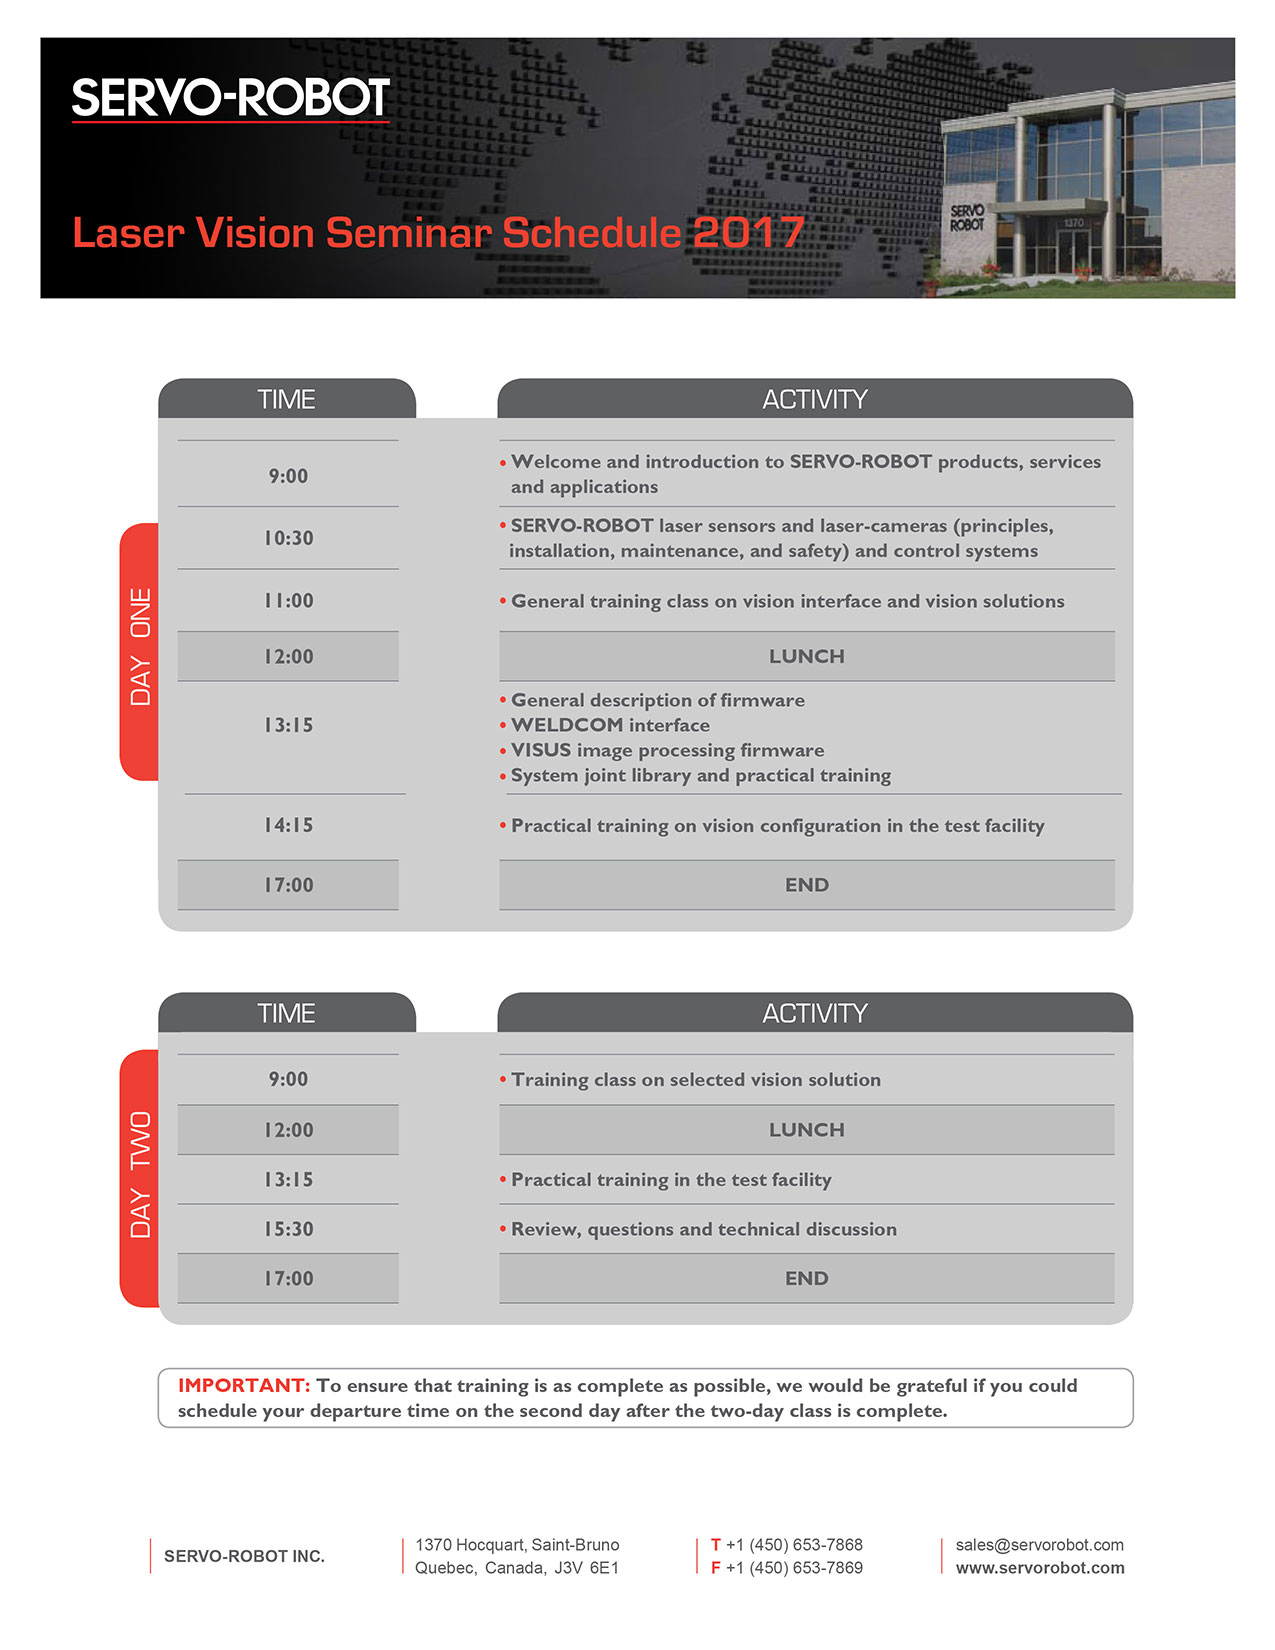 SERVO-ROBOT Training Schedule for 2017 page 2